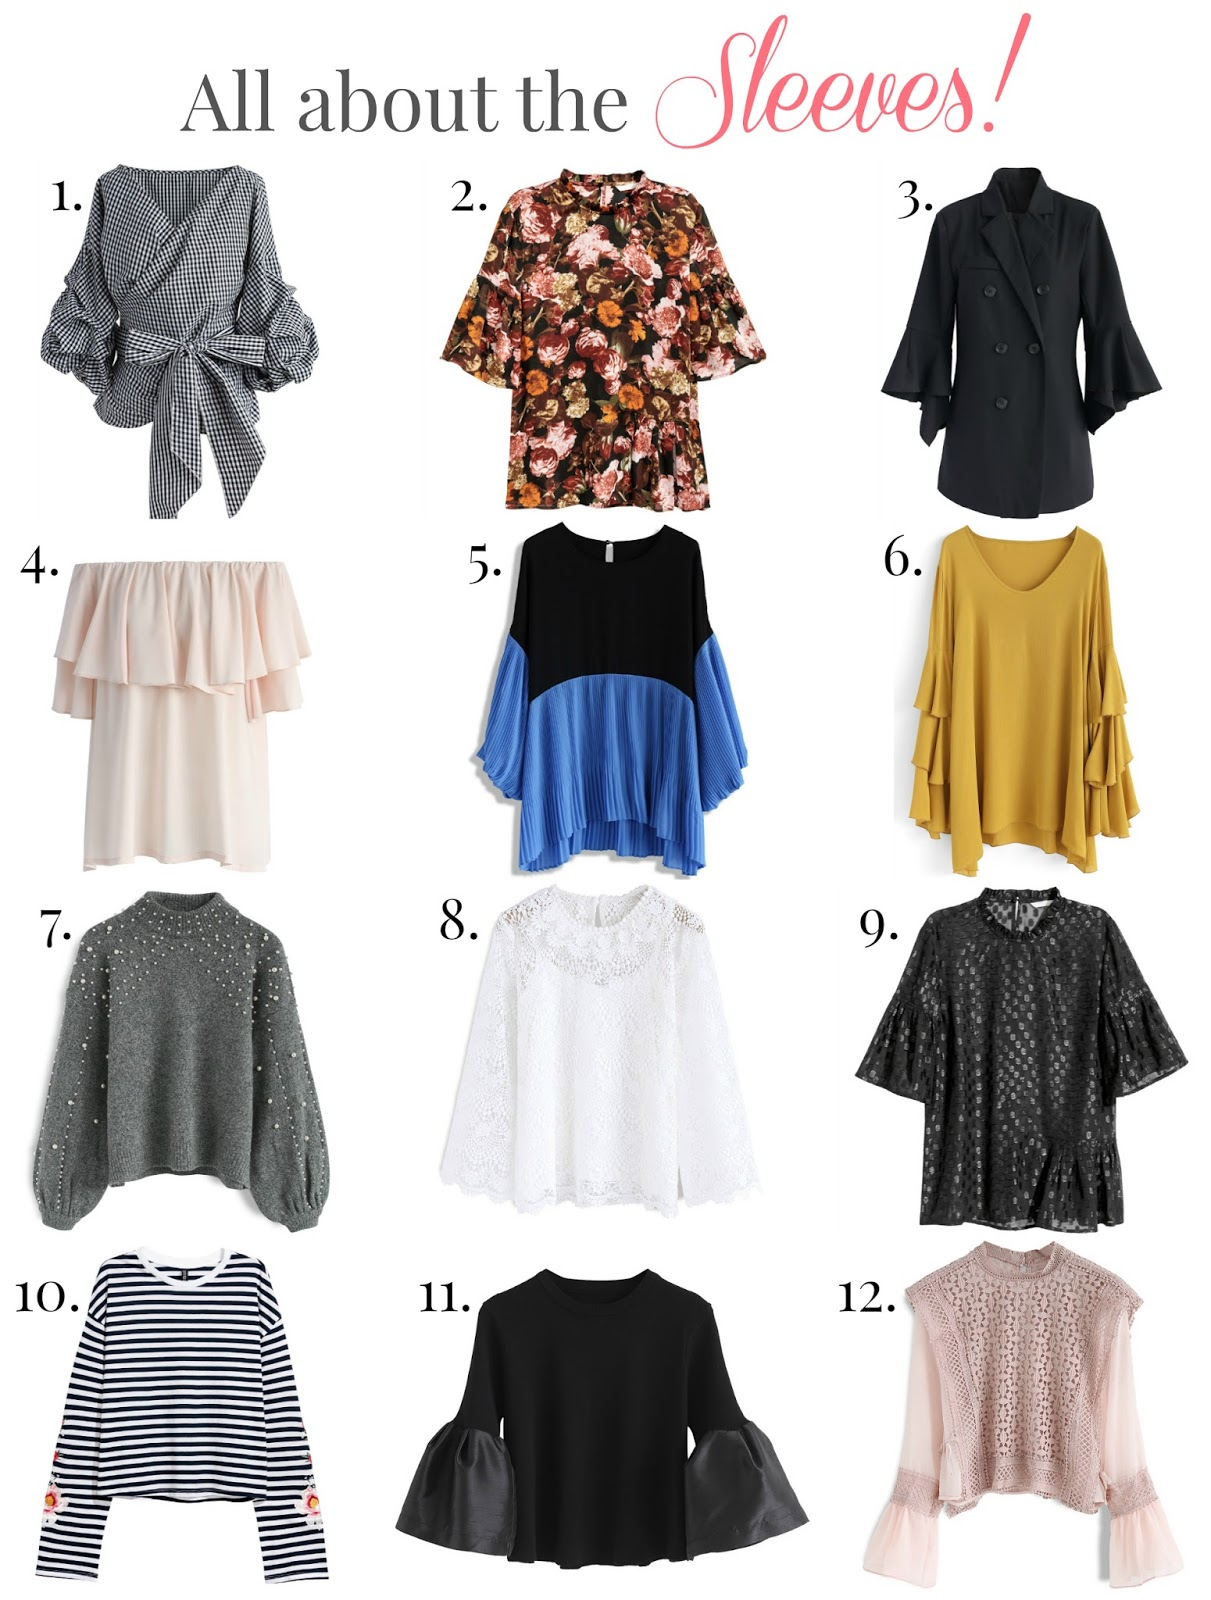 affordable frilly sleeved tops, frilly sleeved tops, belle sleeve tops, unique sleeves